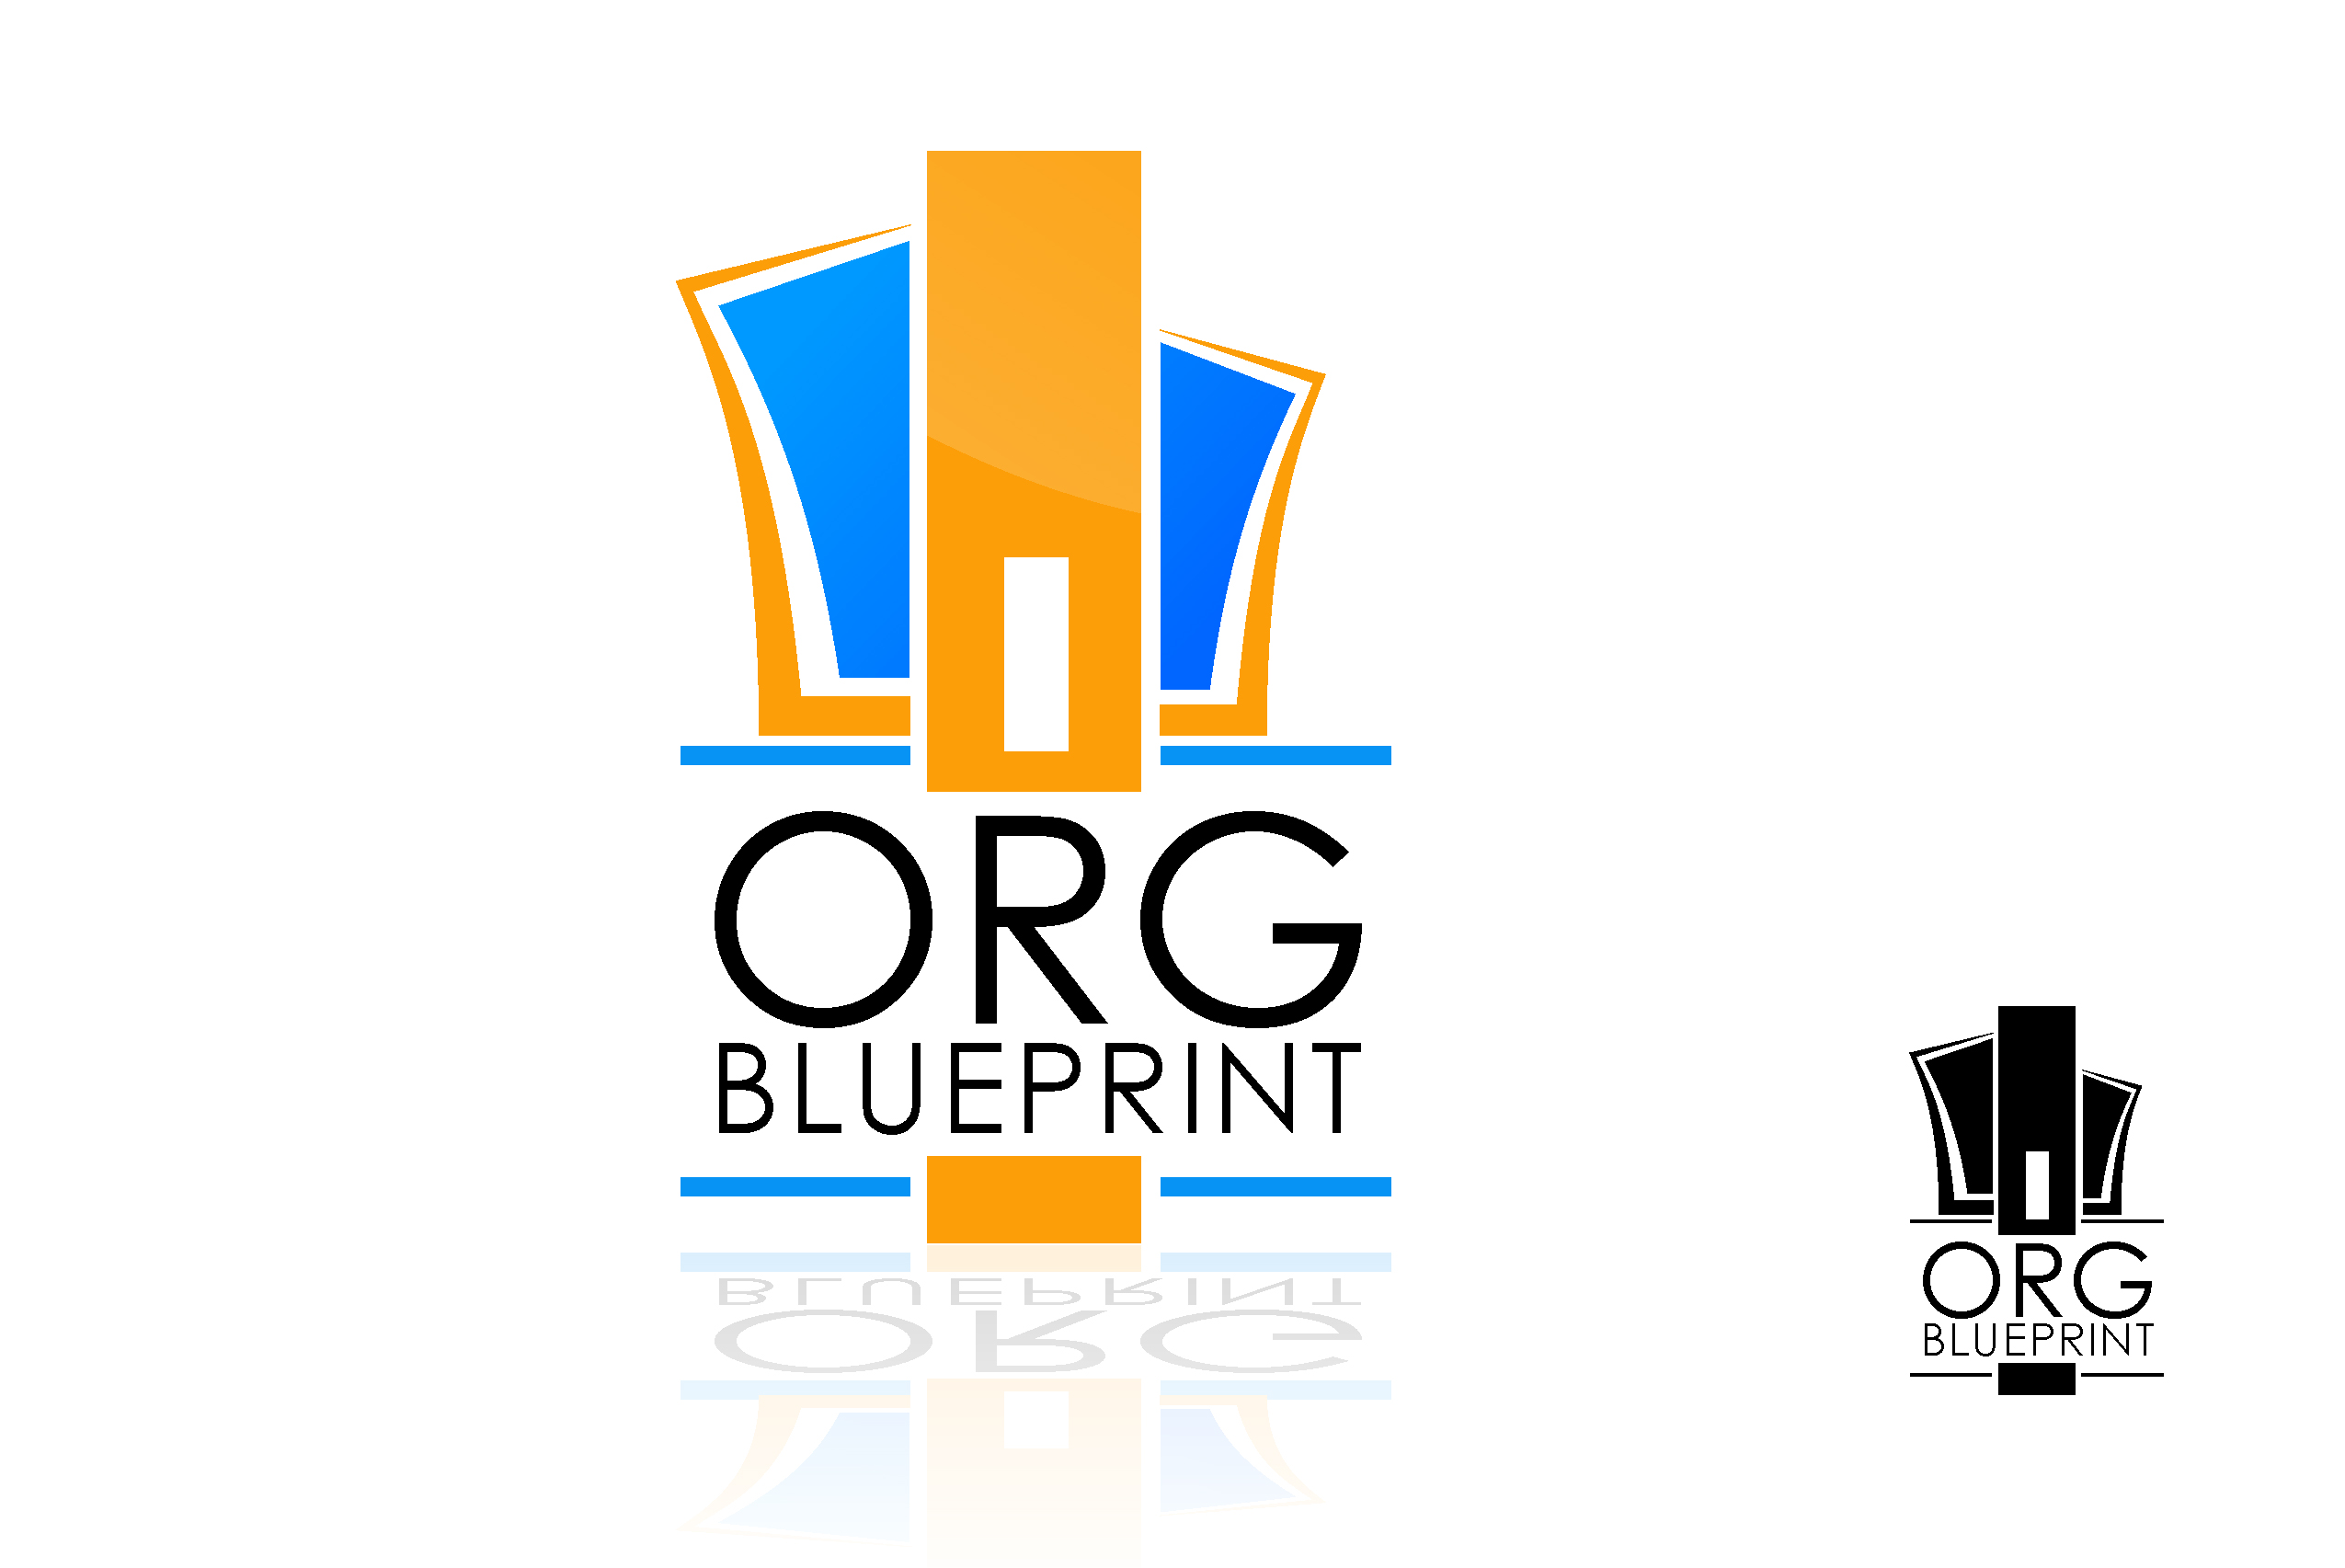 Logo design for org blueprint by perkins design studio design 15844 logo design by perkins design studio for logo design for a business architecture consultant design malvernweather Gallery